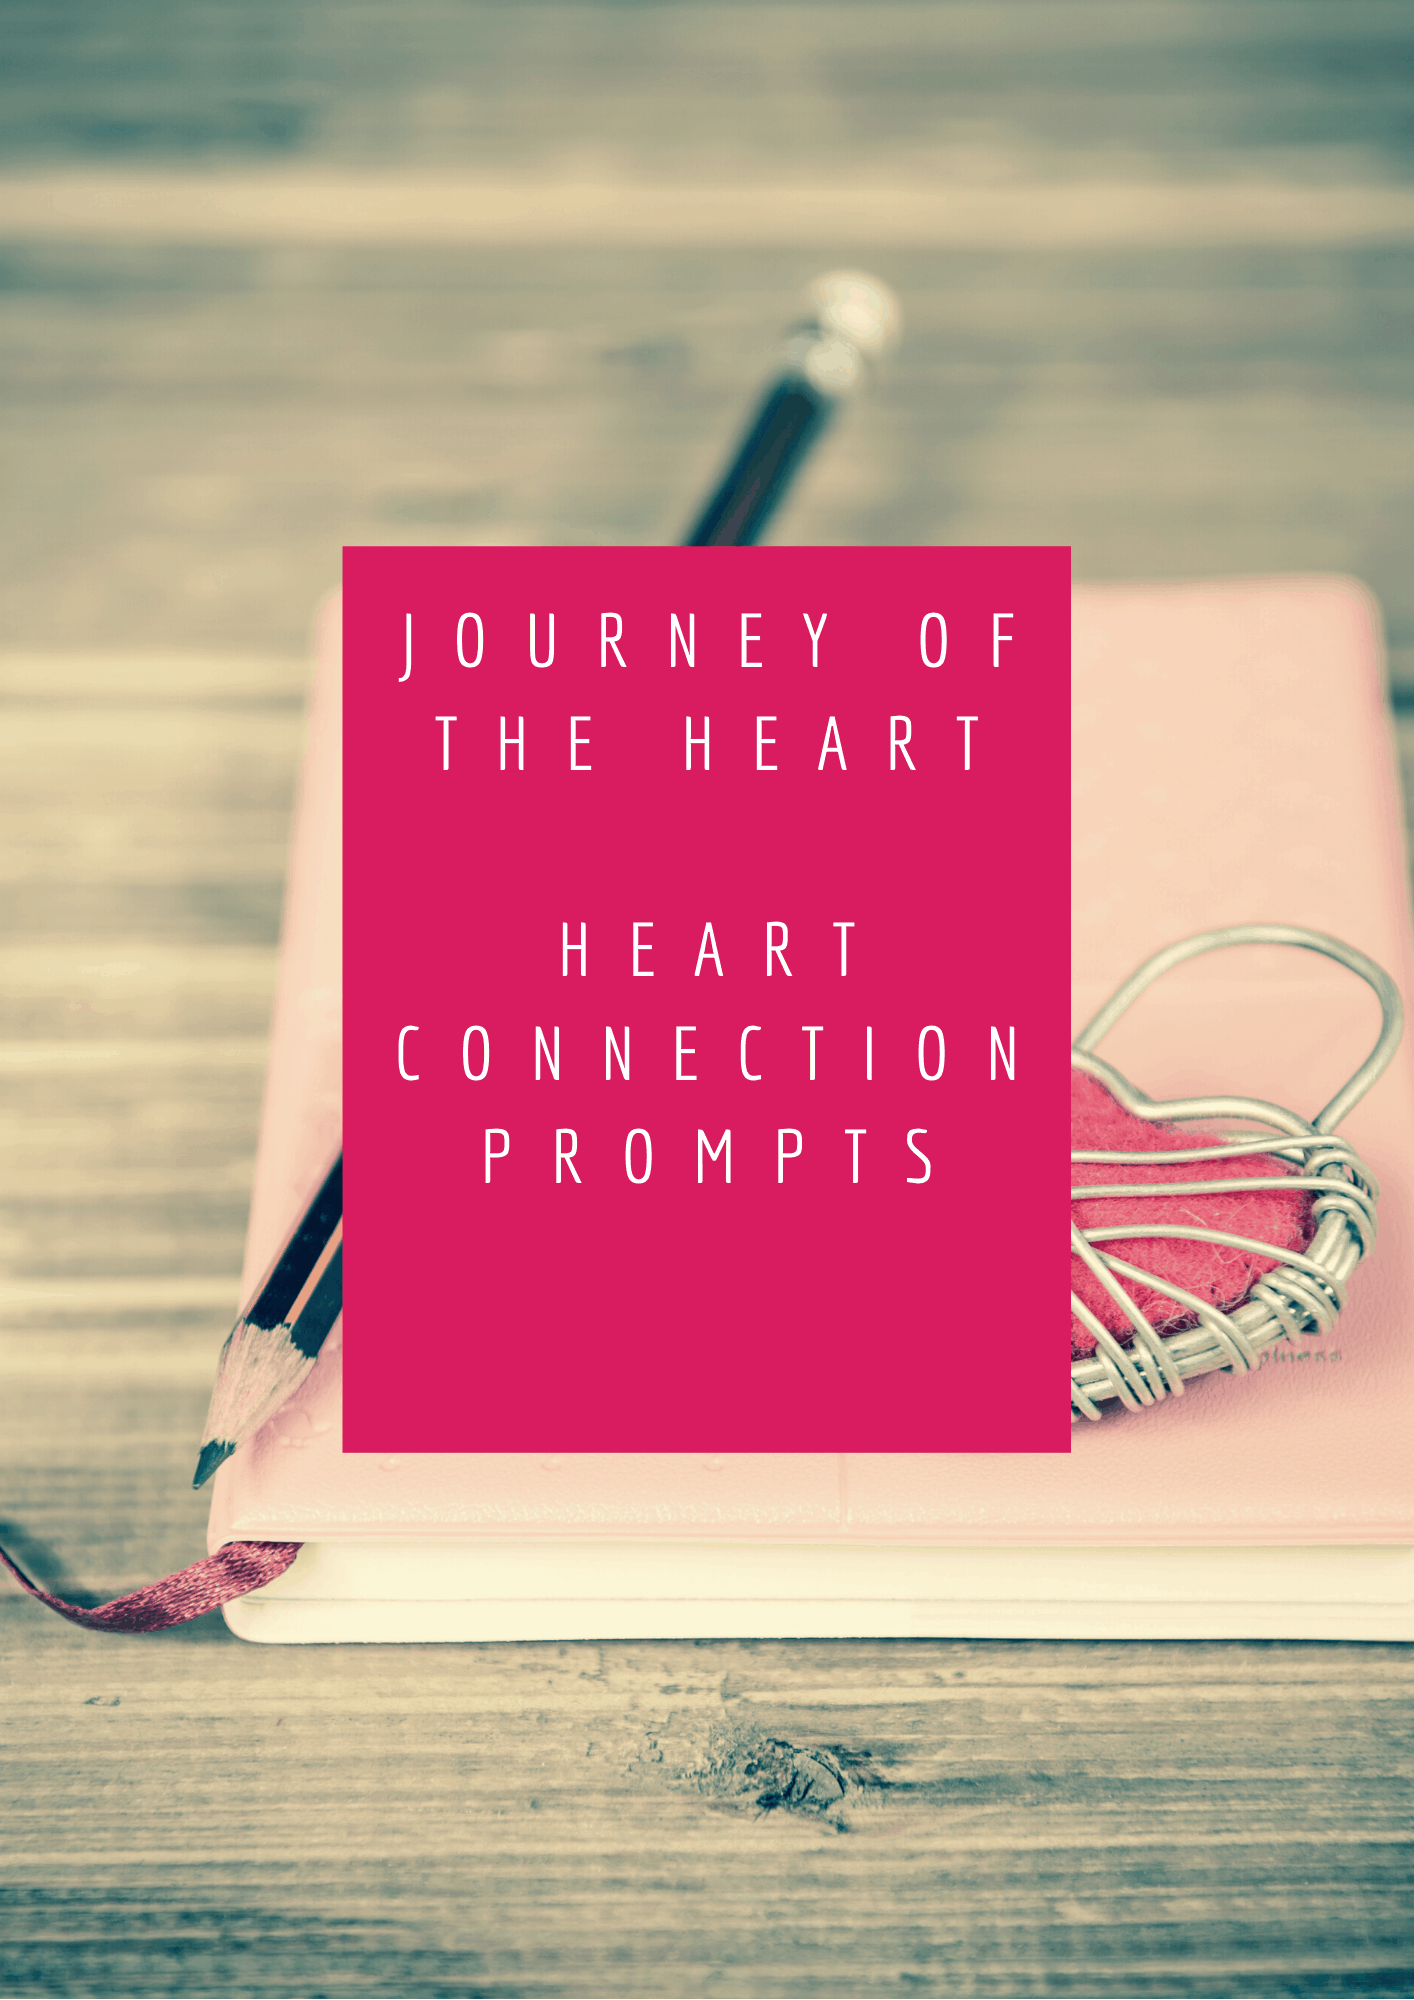 14 Journal Prompts for the heart